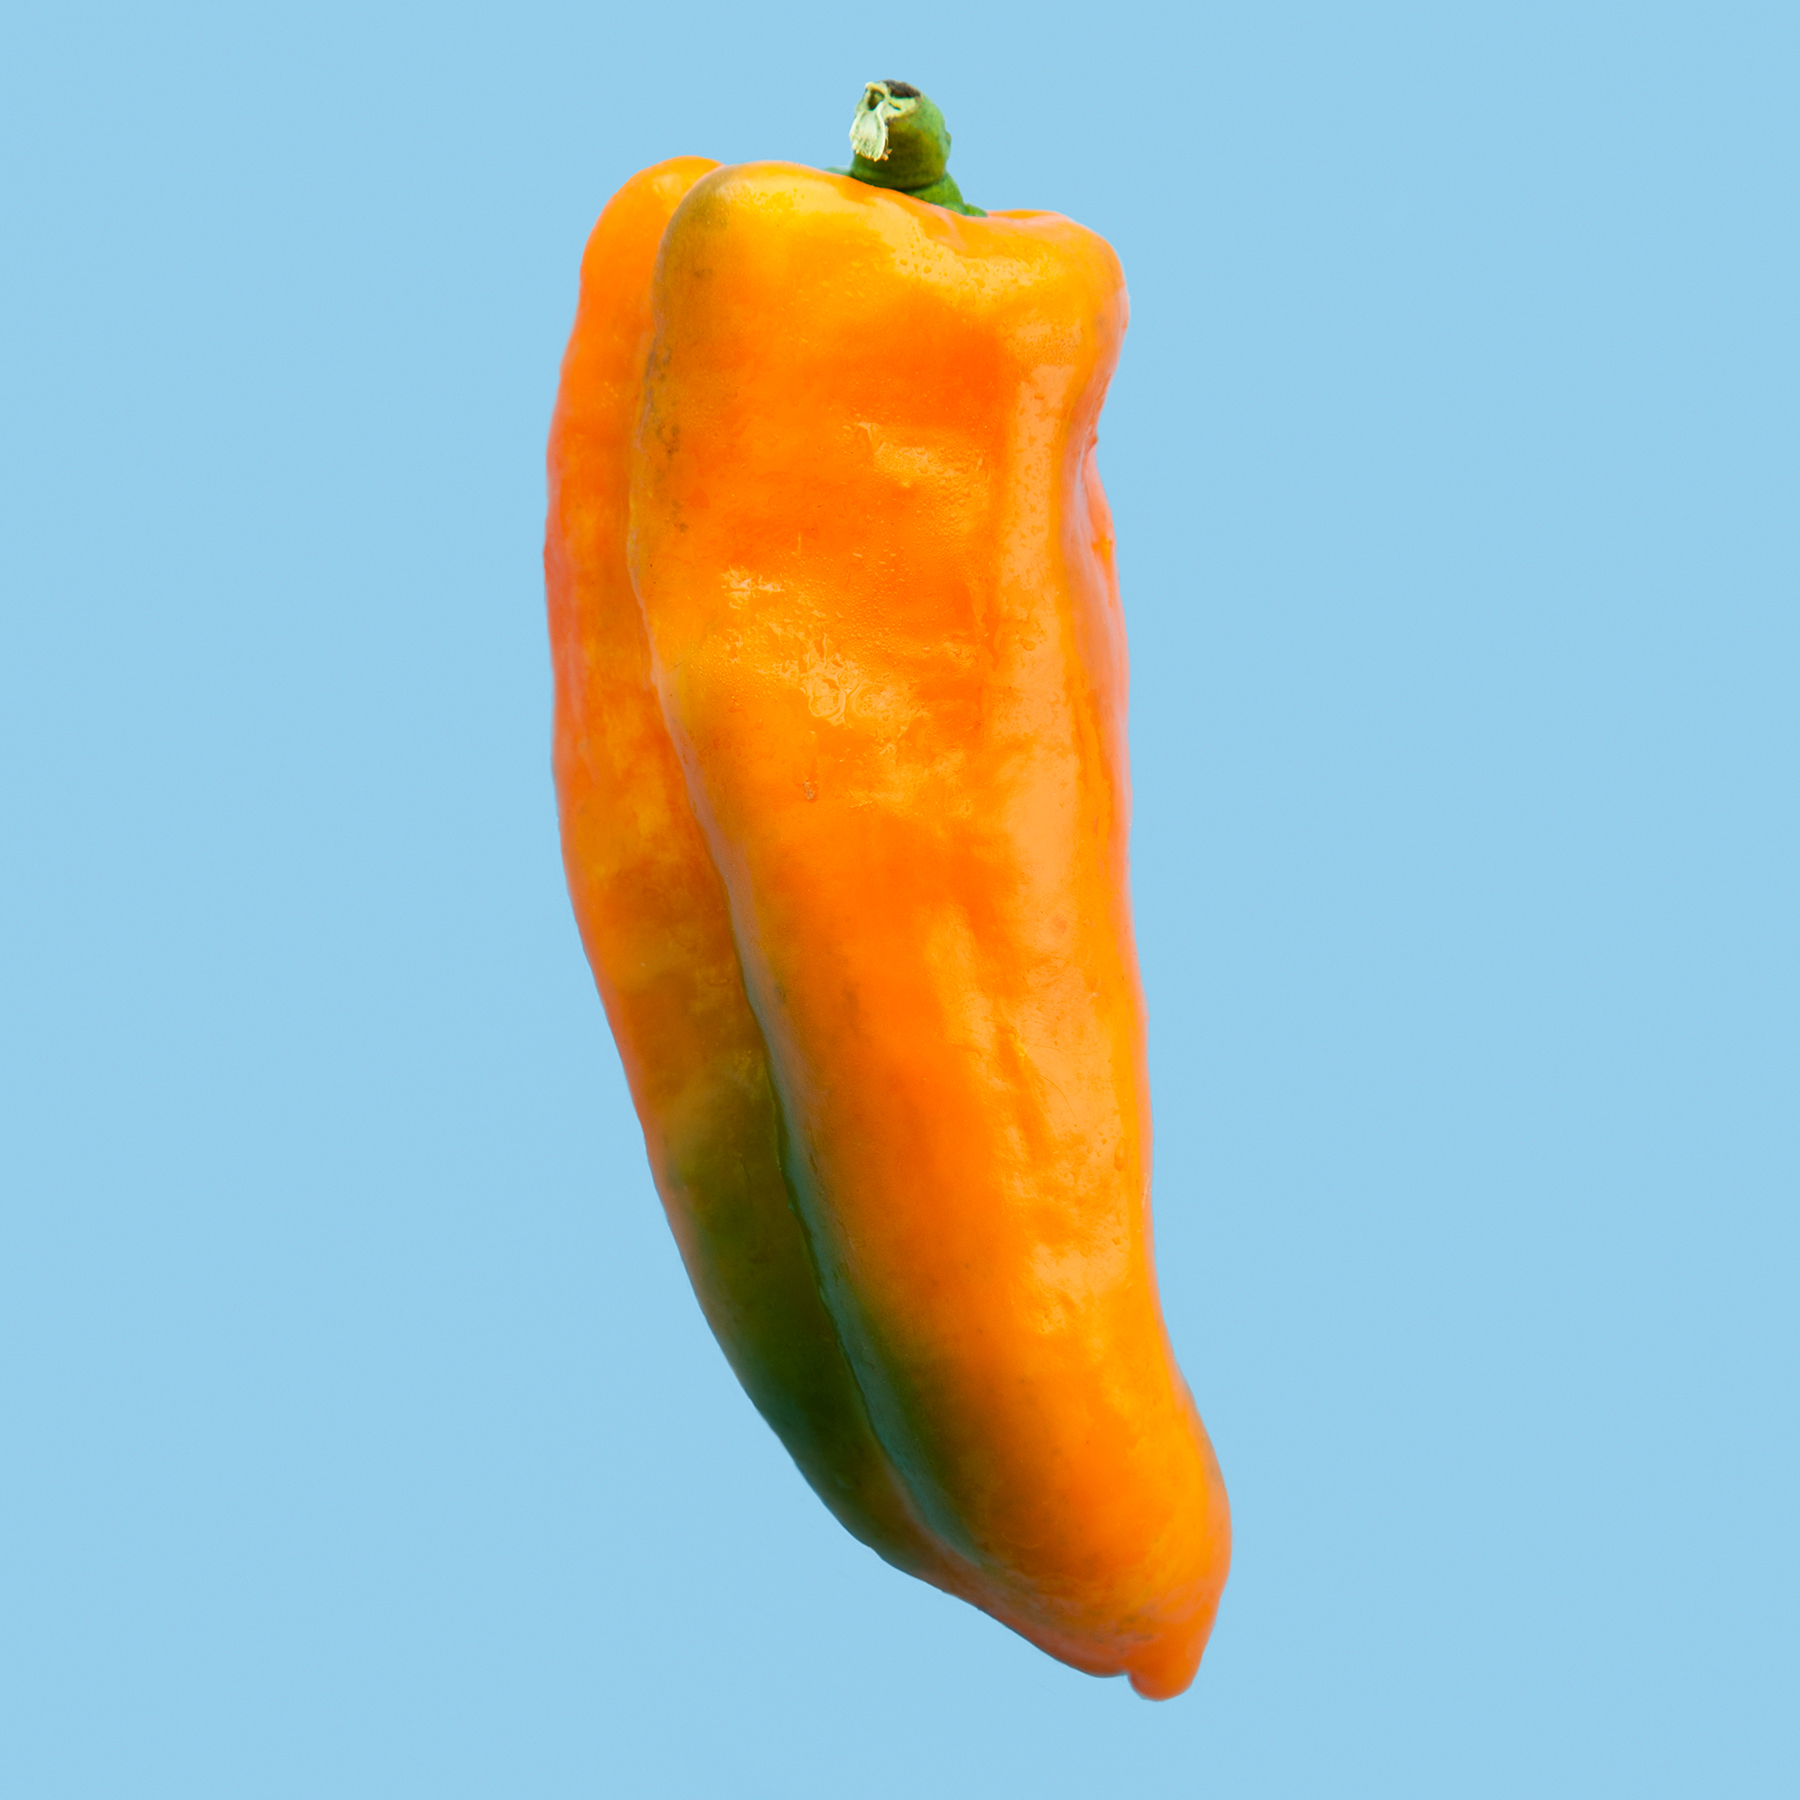 PEPPER--GATHERERS-GOLD-ORGANIC-VEGETABLE-FOOD-ORANGE_HICKORIES-FARM-©-JONATHAN-R.-BECKERMAN-PHOTOGRAPHY-083016_COLOR.jpg